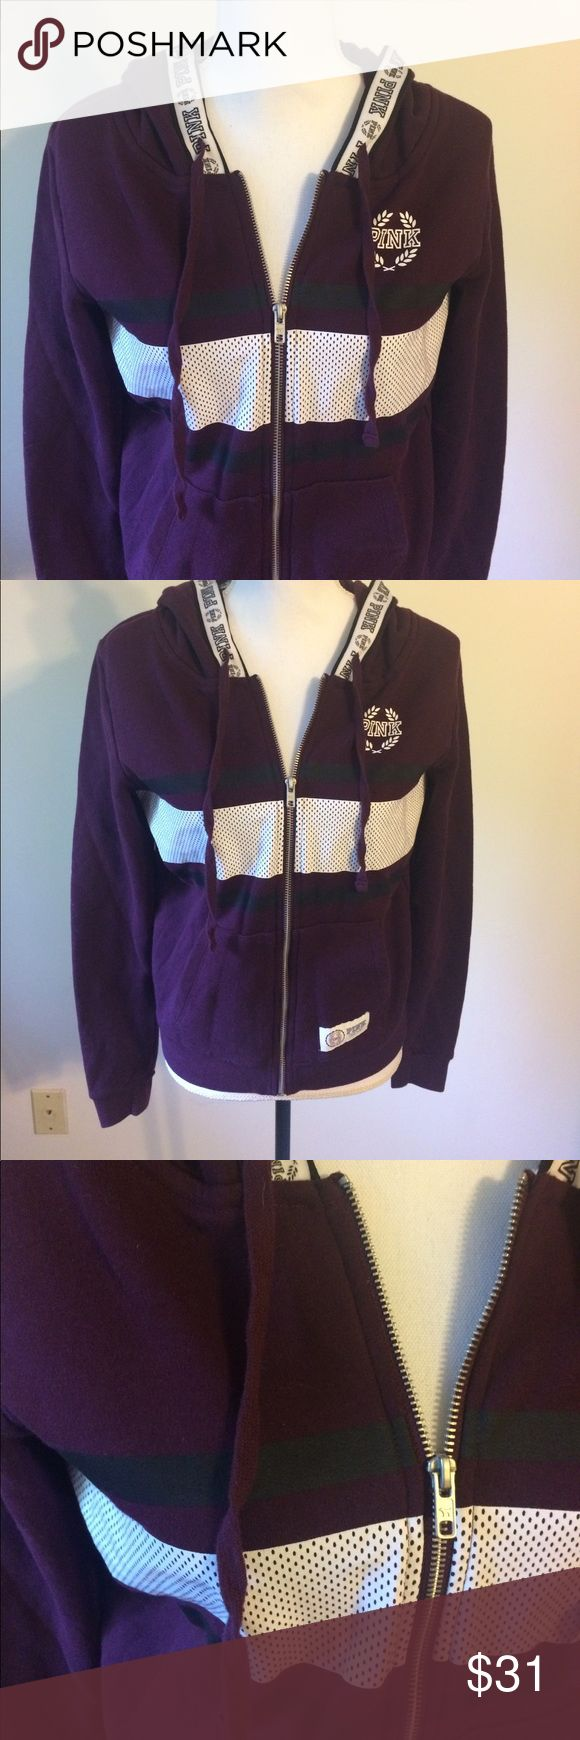 Sporty PINK Hoodie SZ Large Stunning burgundy/purple and white zip up sweatshirt by PINK. Great condition, barely worn. Women's Size Large. PINK Tops Sweatshirts & Hoodies